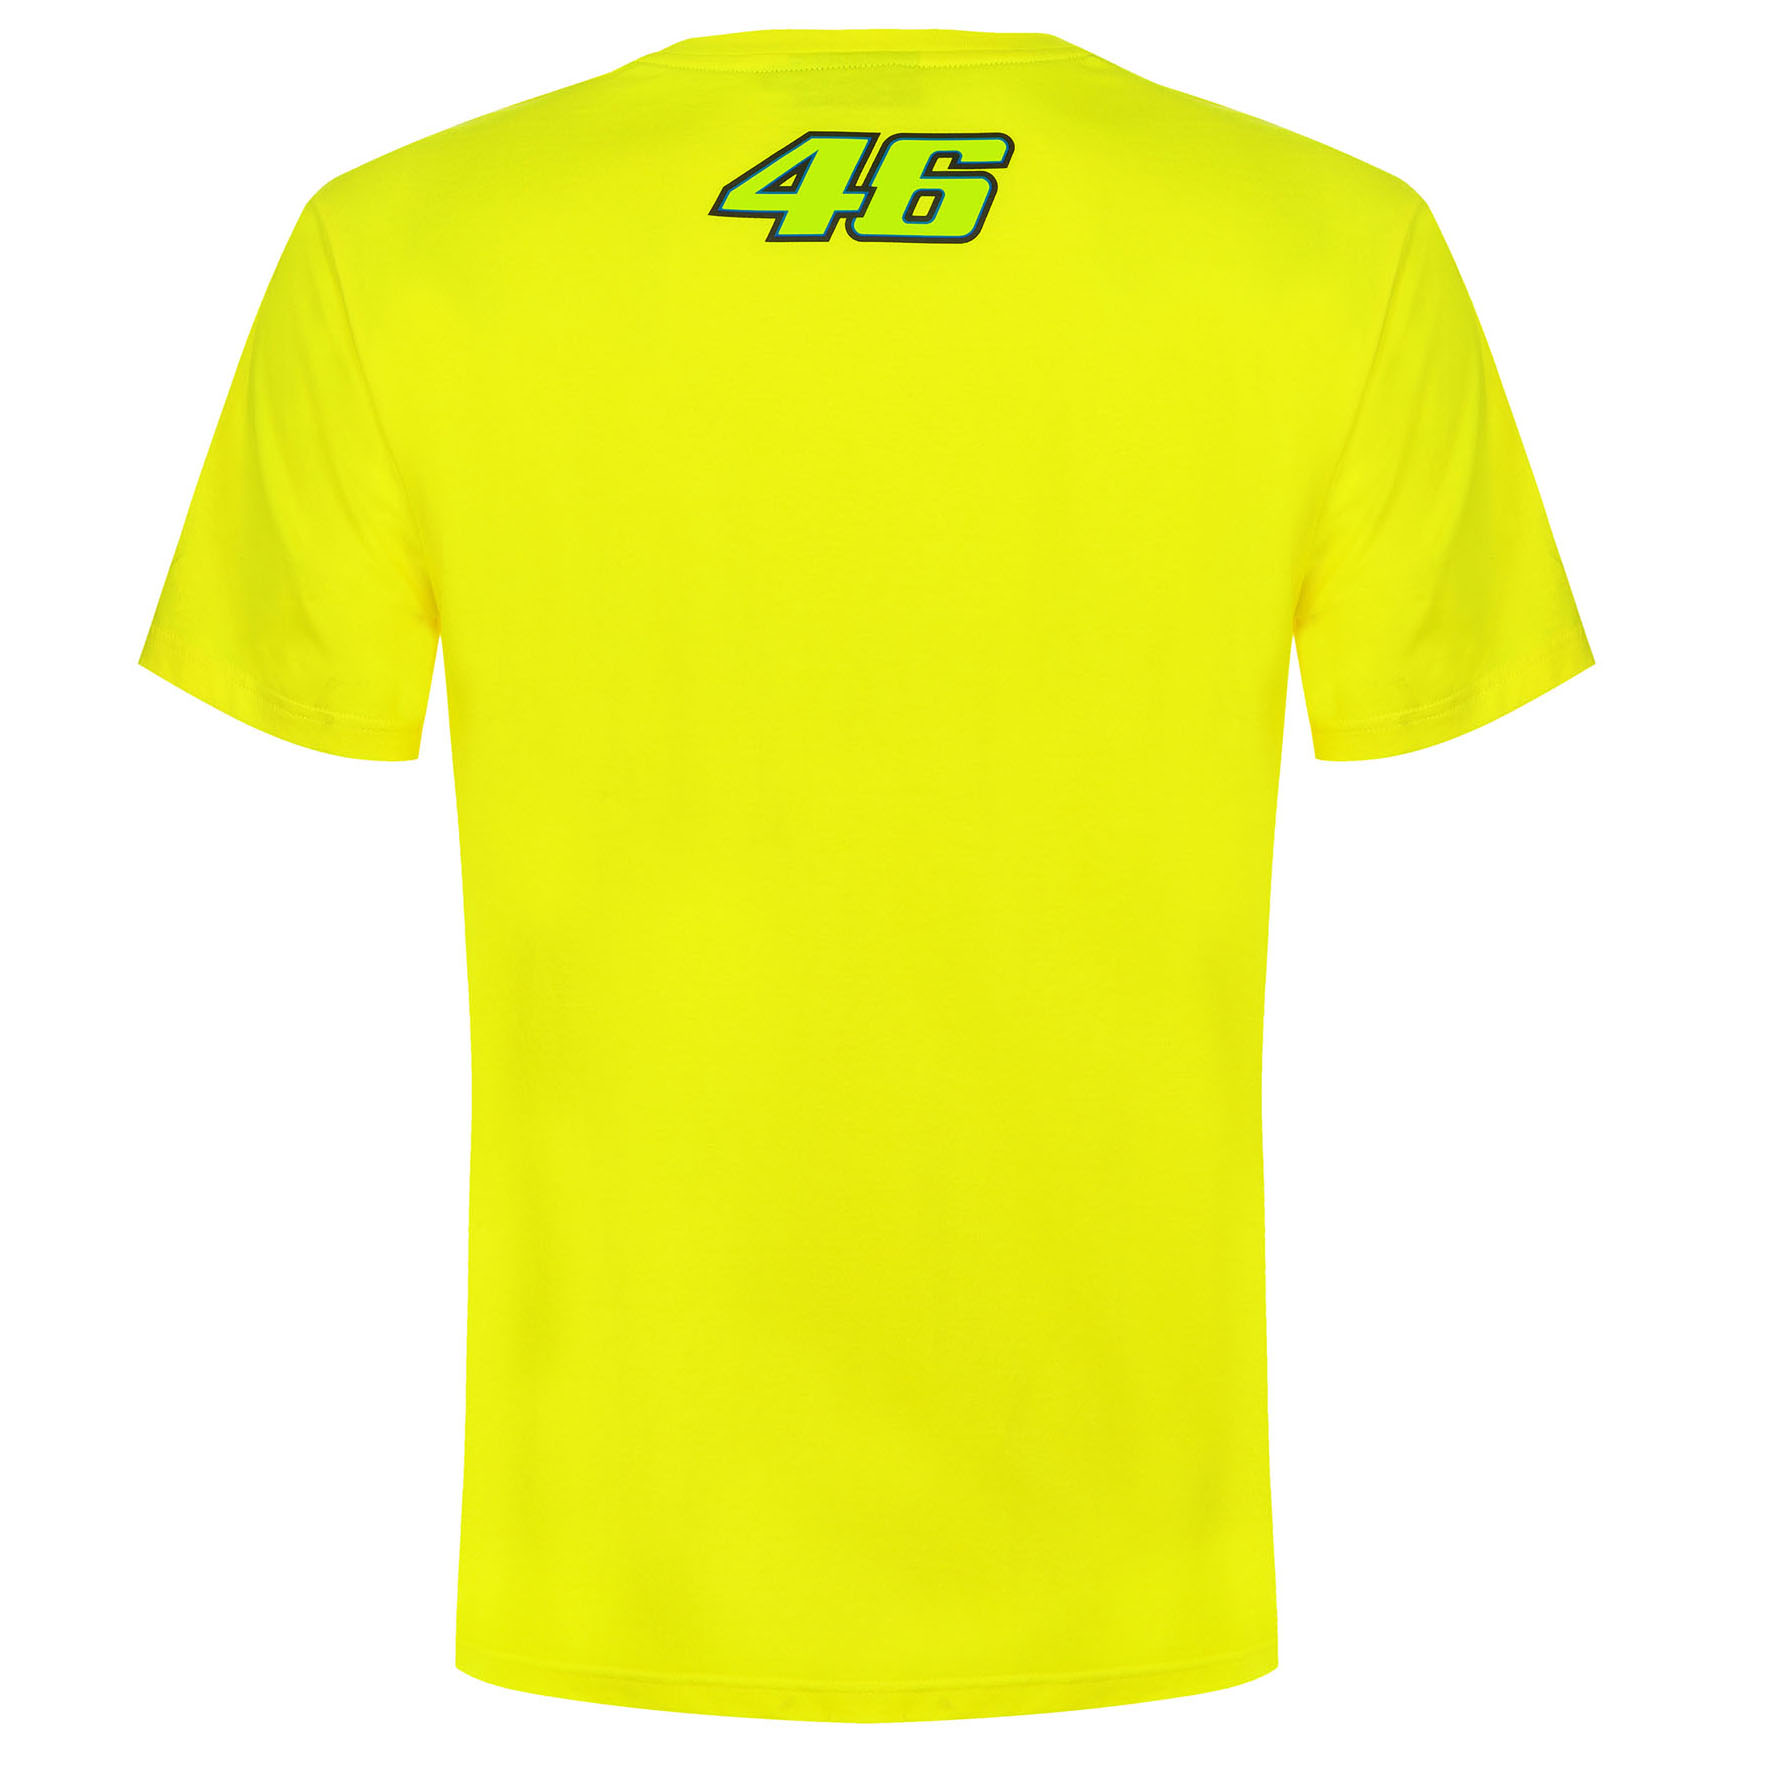 VR46 Valentino Rossi 46 THE DOCTOR Men/'s T-Shirt Yellow #46 Official Merchandise